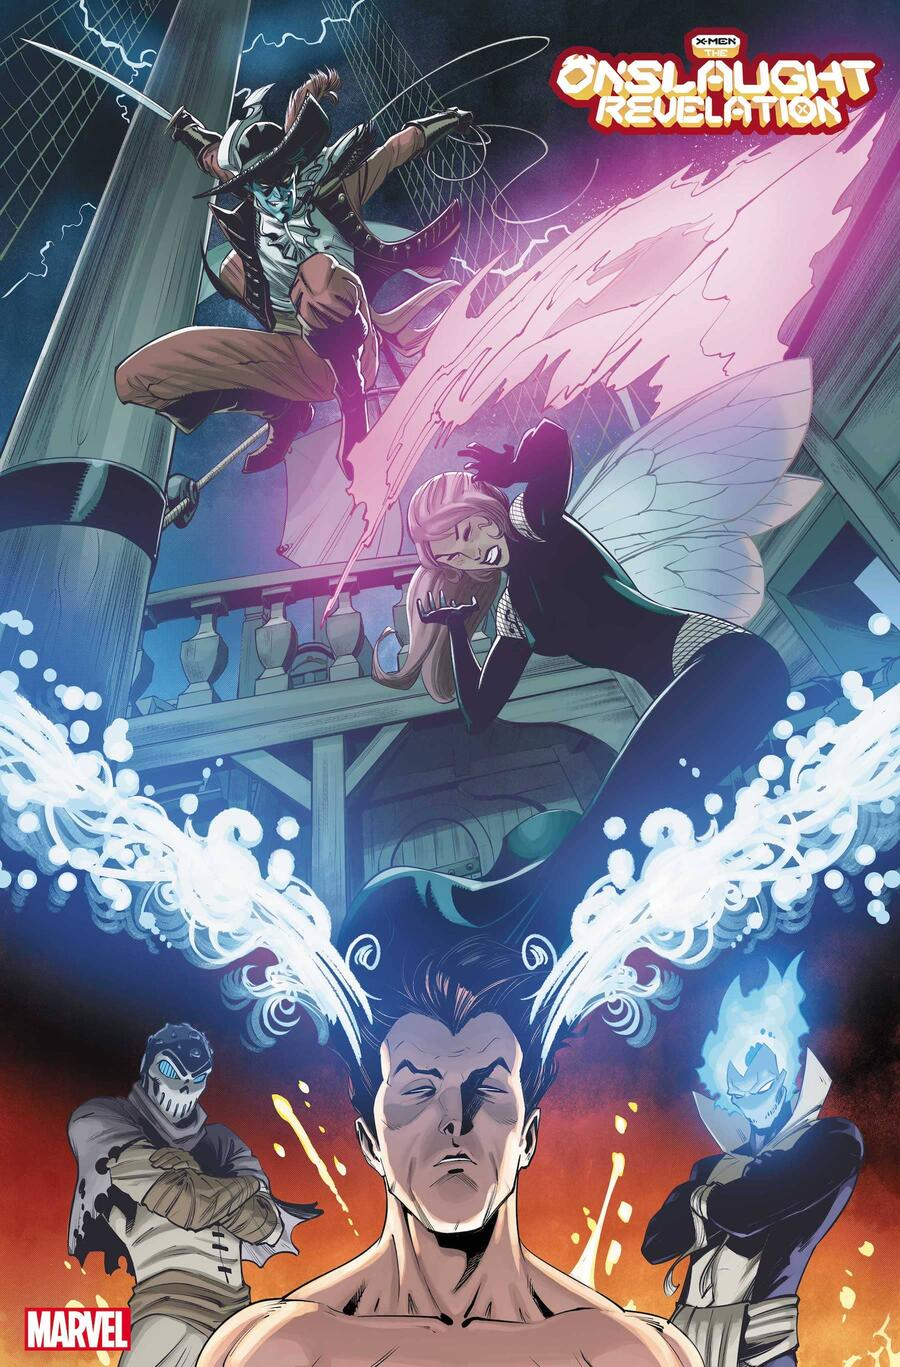 X-MEN: ONSLAUGHT REVELATION #1 preview art by Bob Quinn with colors by Java Tartaglia